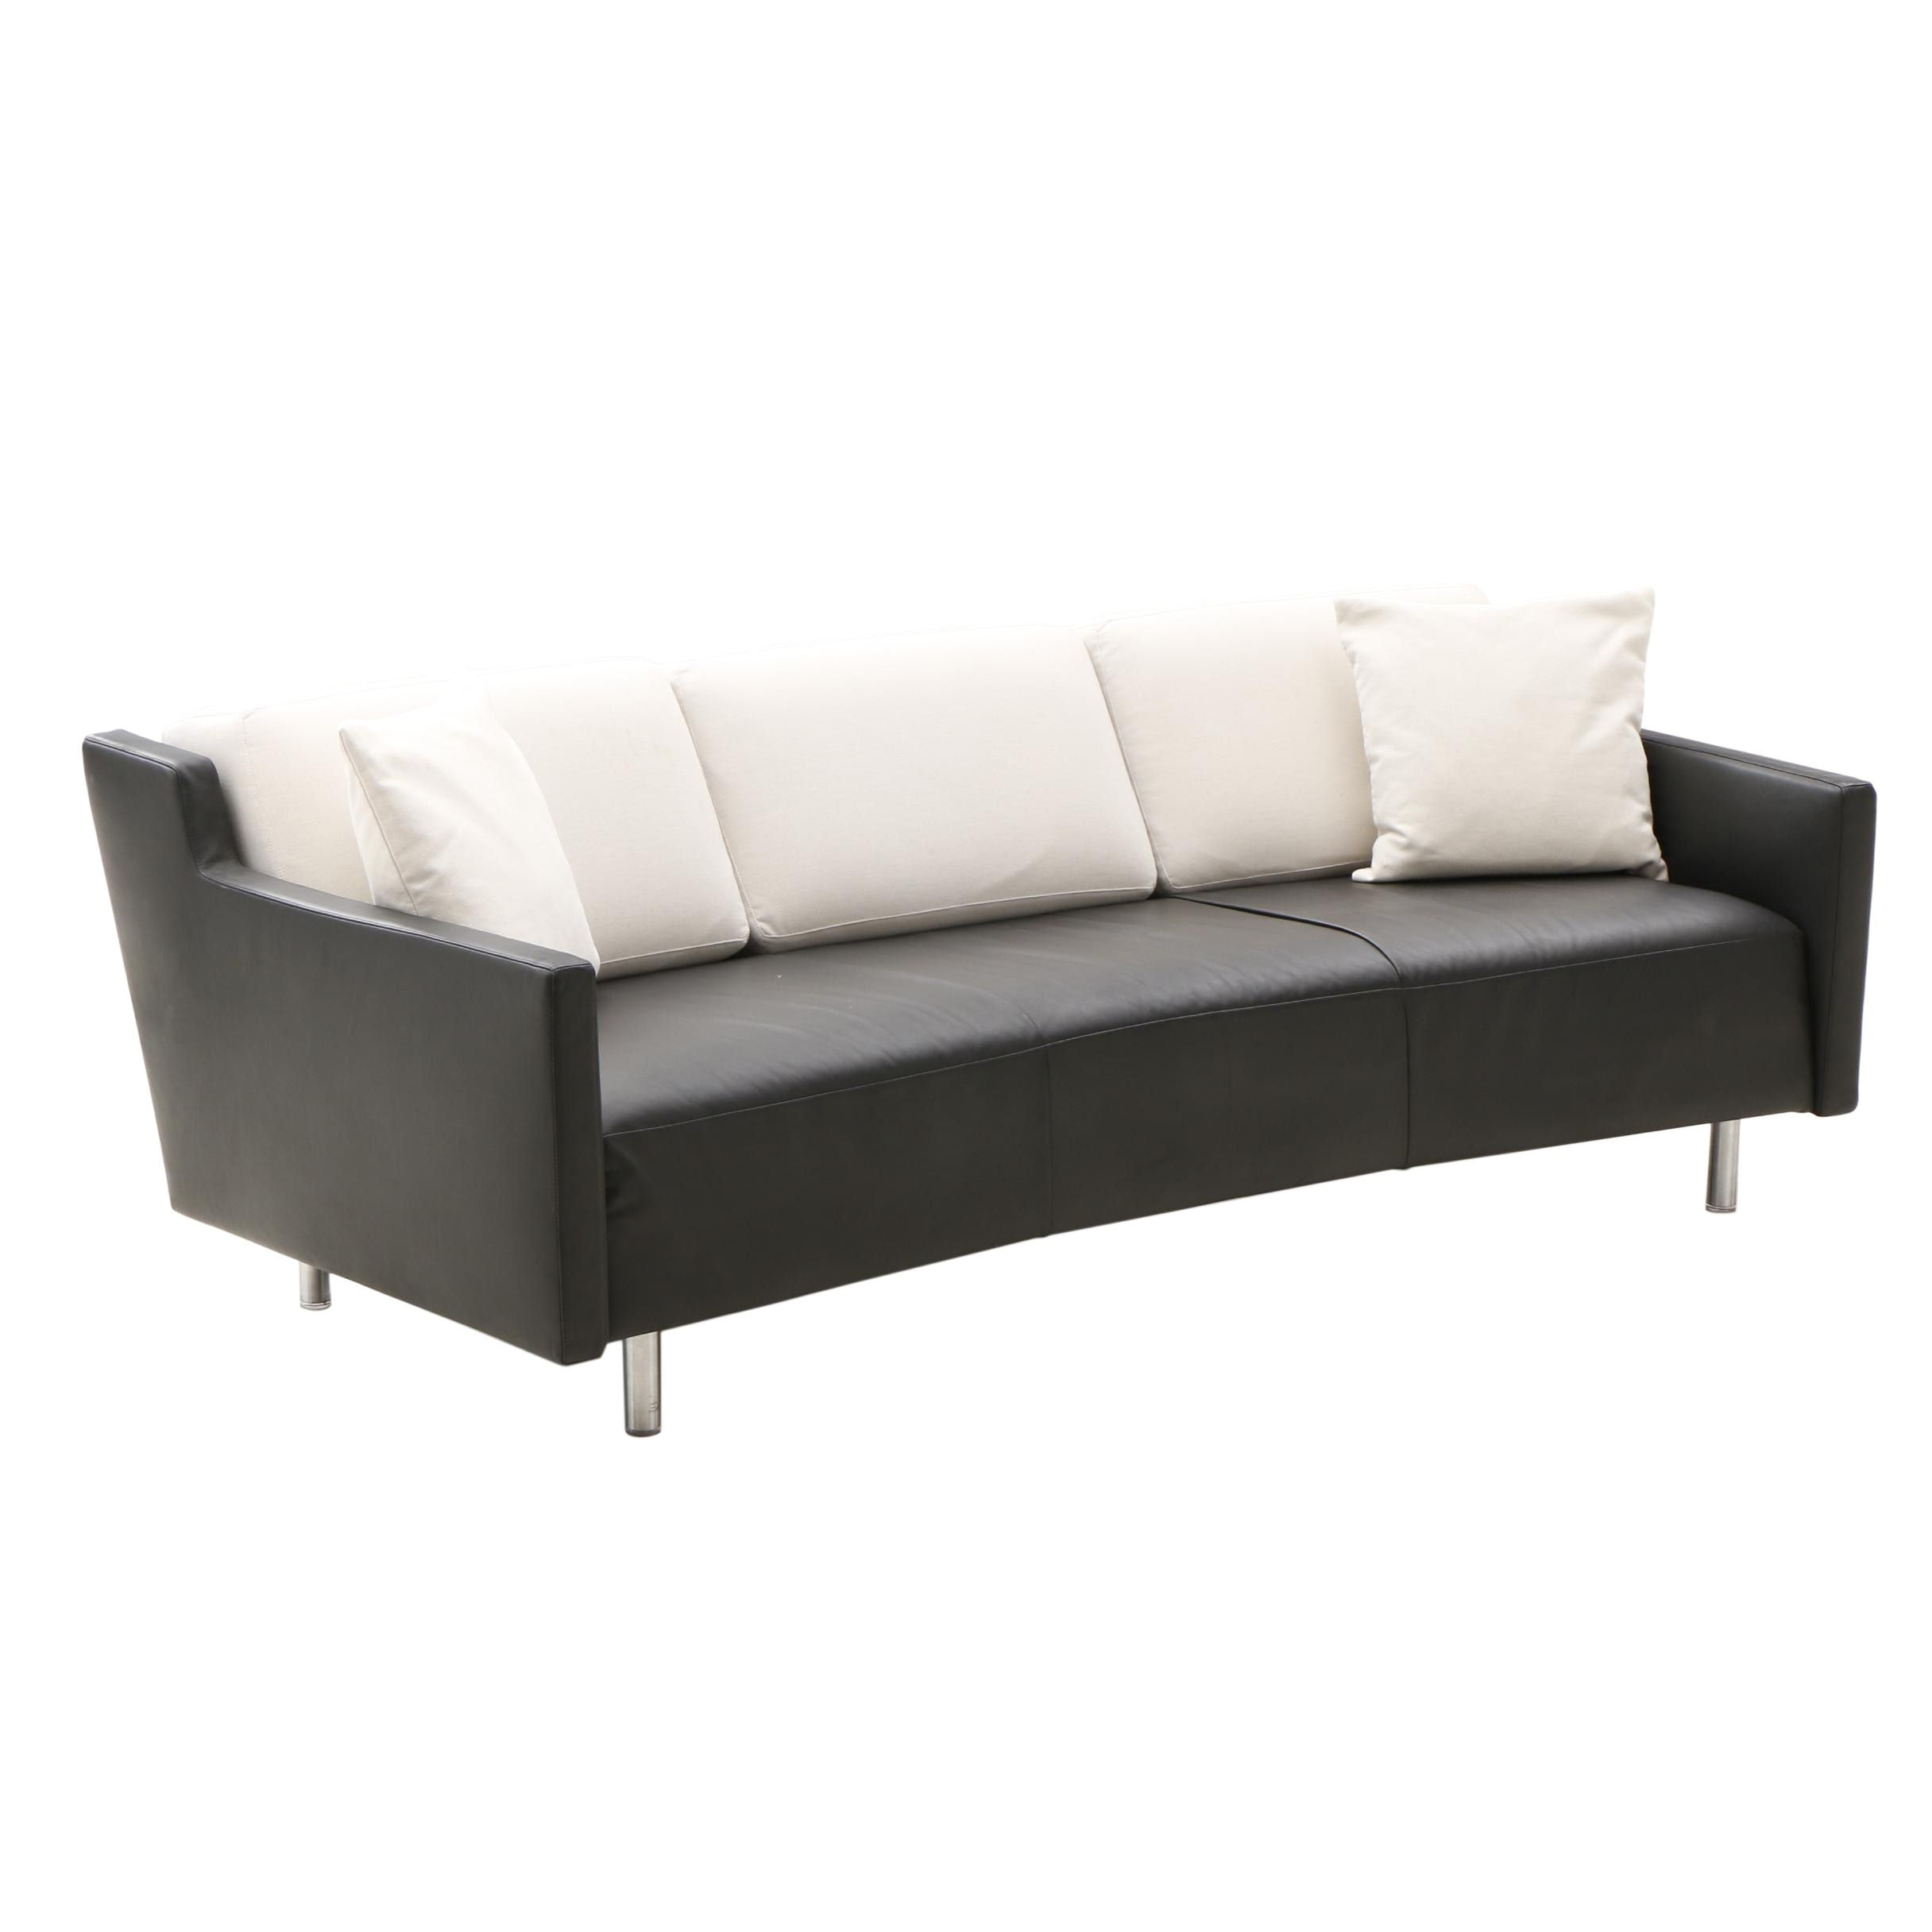 "Montis ""Meander"" Leather Sofa"